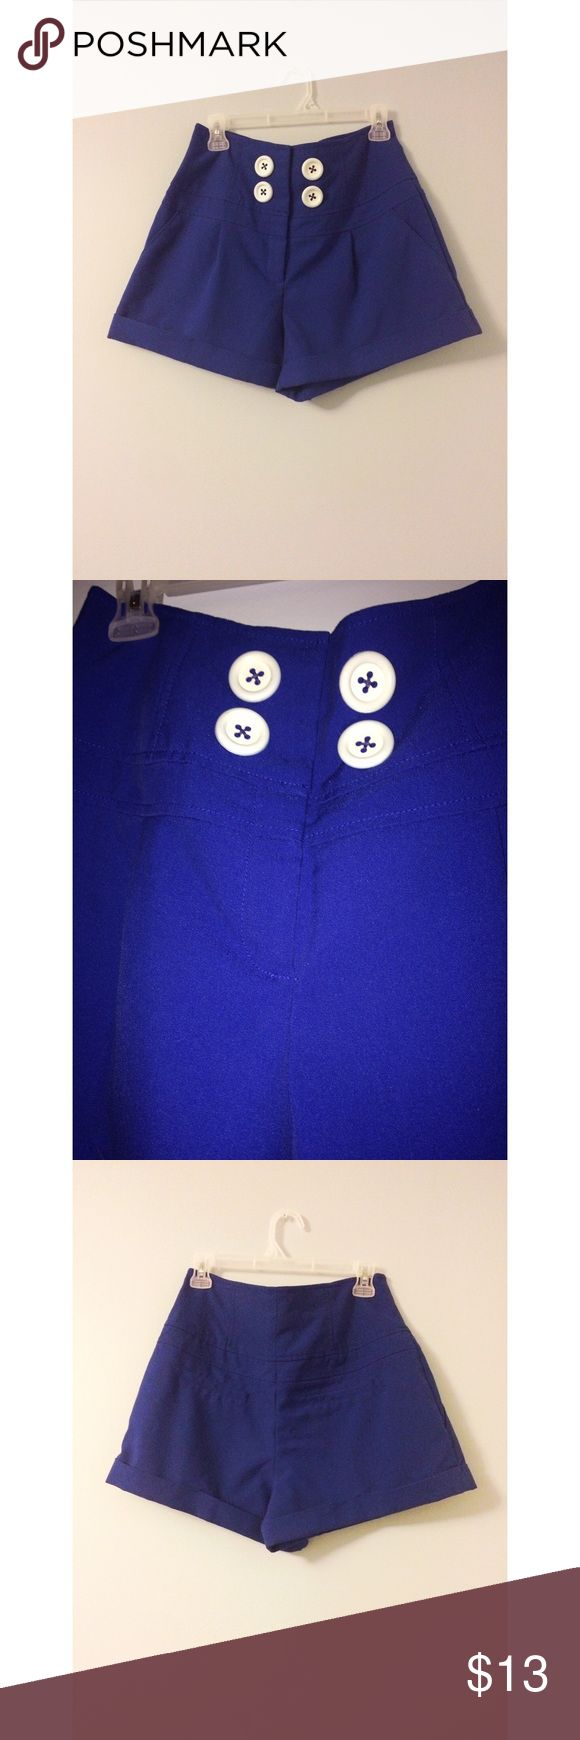 High Waisted Cobalt Blue Pants w/ White Buttons I bought these shorts because of how cute they are but I can't seem to find the right shirt to go with them. Worn once, in good condition. Zip fly with four top buttons. Two front packets to stash your stuff. Buttons and everything intact with patch pockets in the back. Forever 21 Shorts